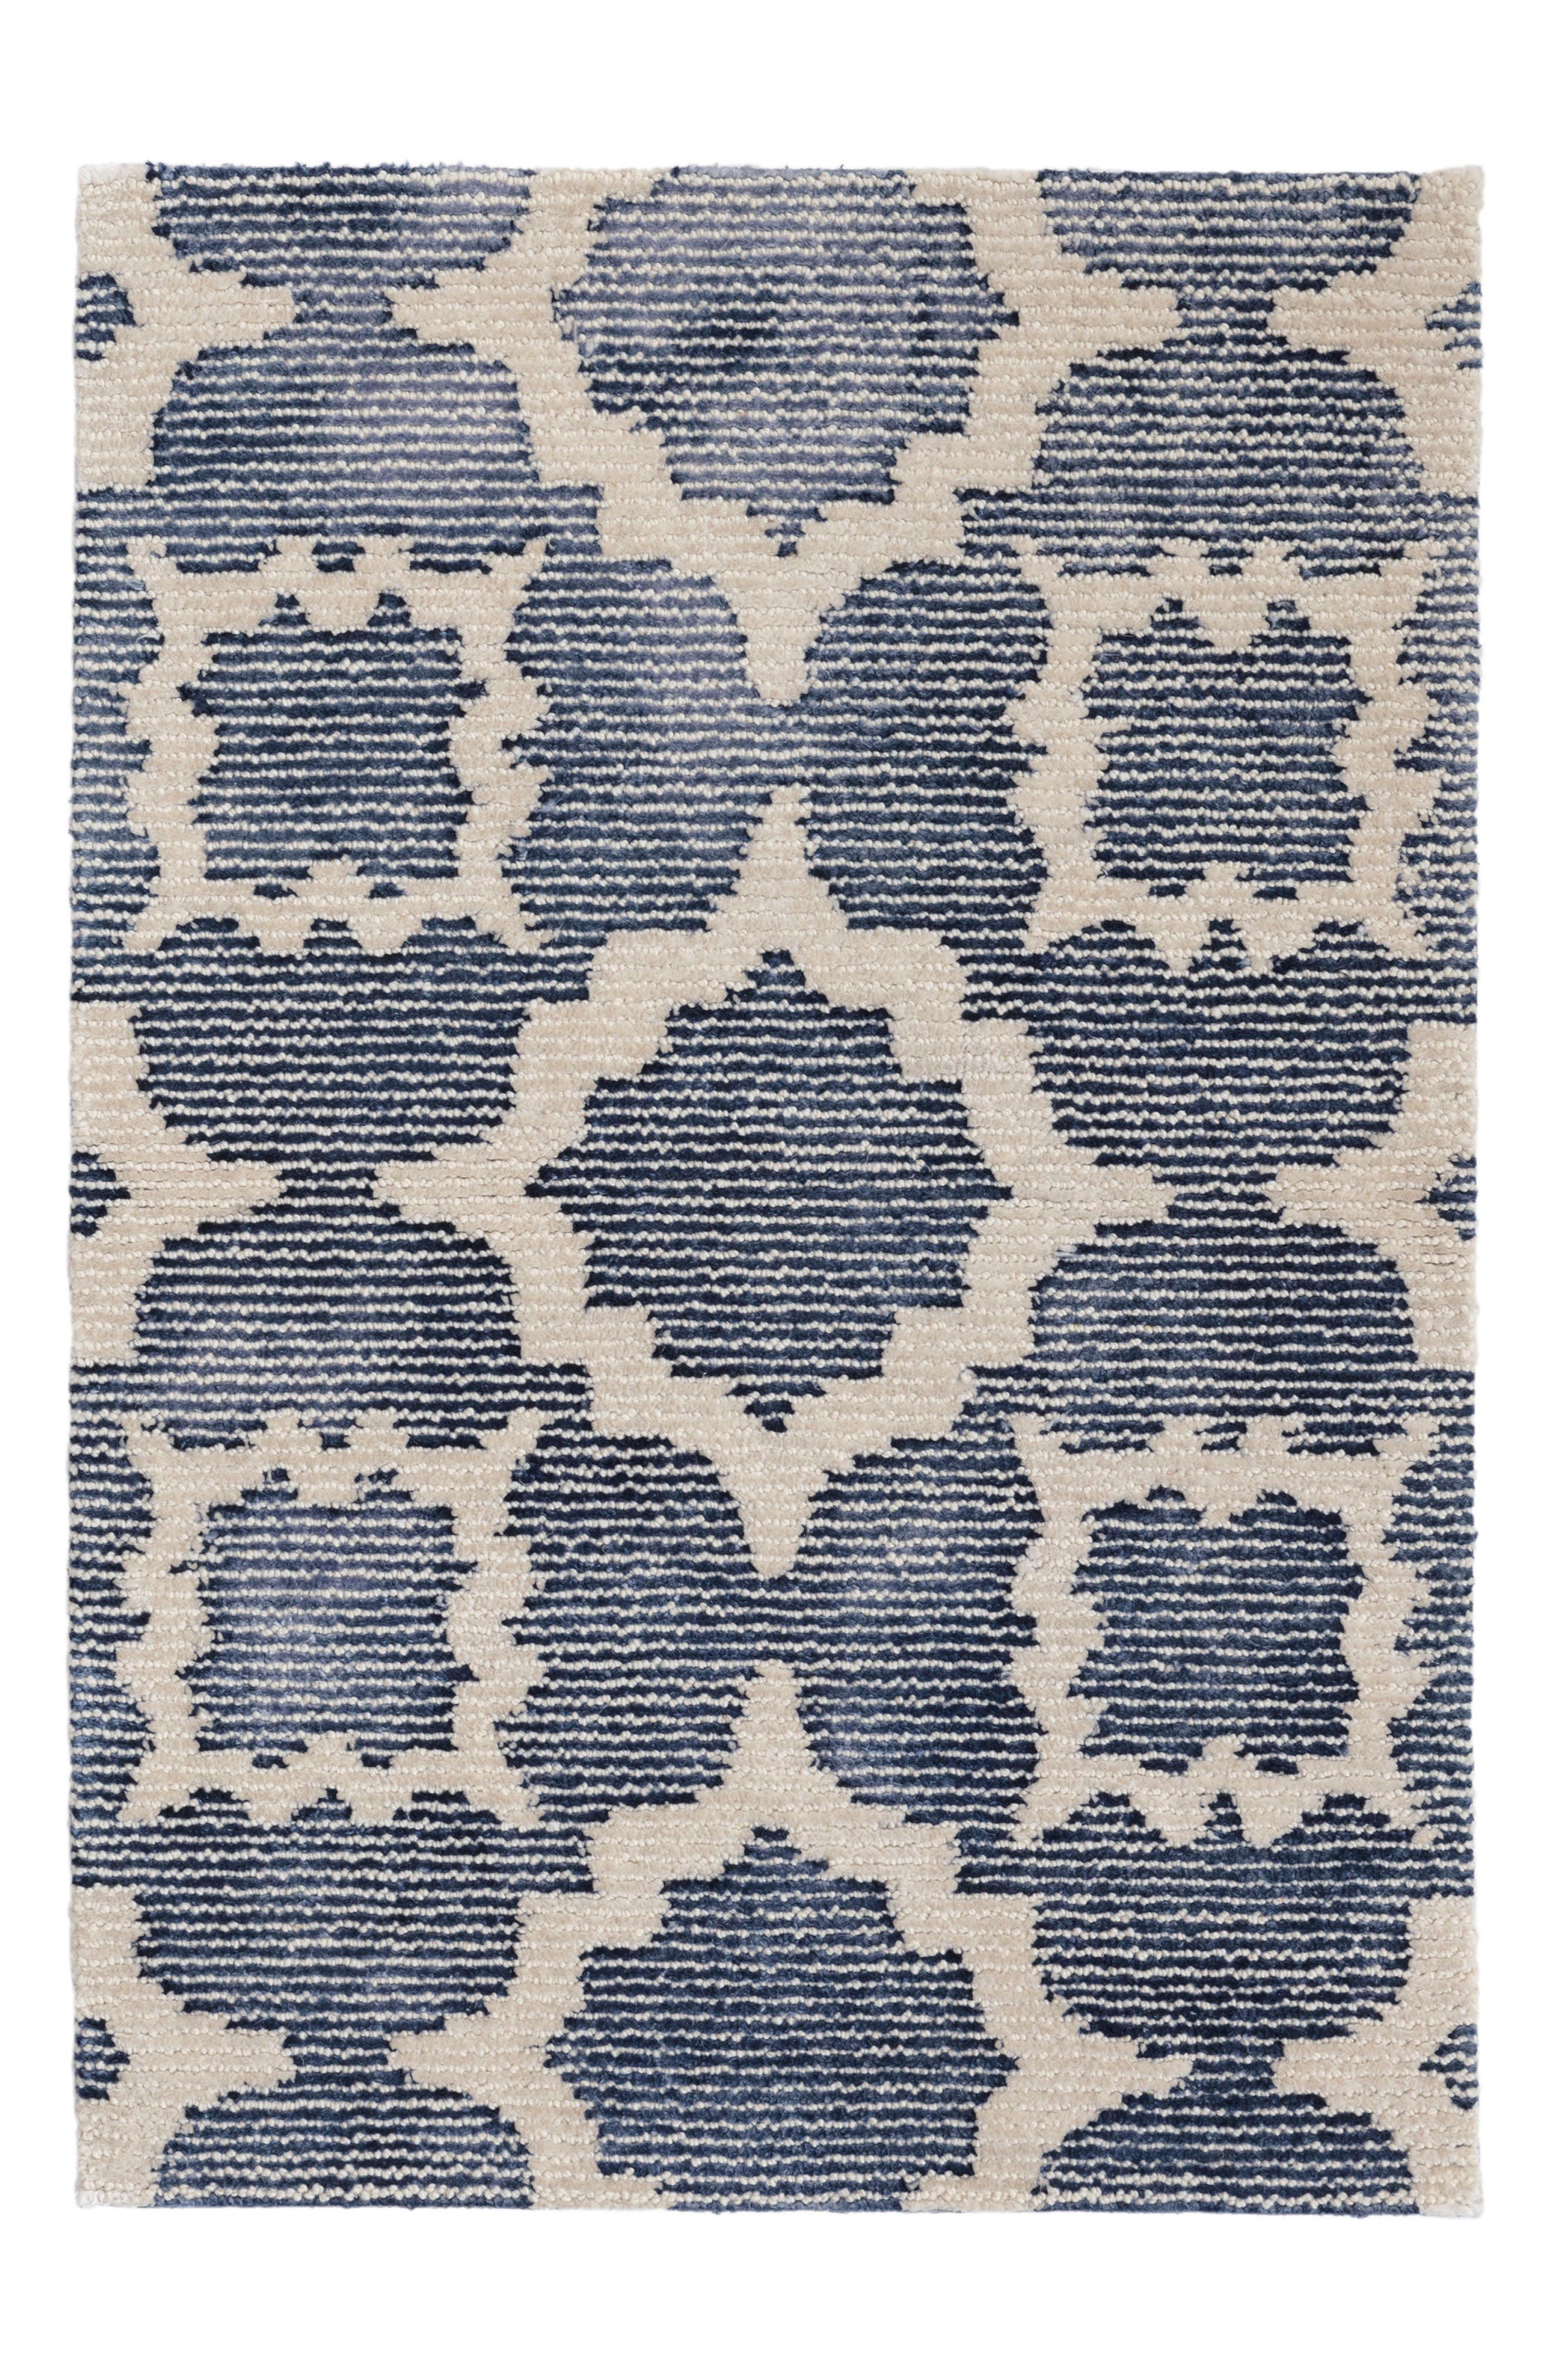 China Hand Knotted Wool Blend Rug,                             Main thumbnail 1, color,                             Blue